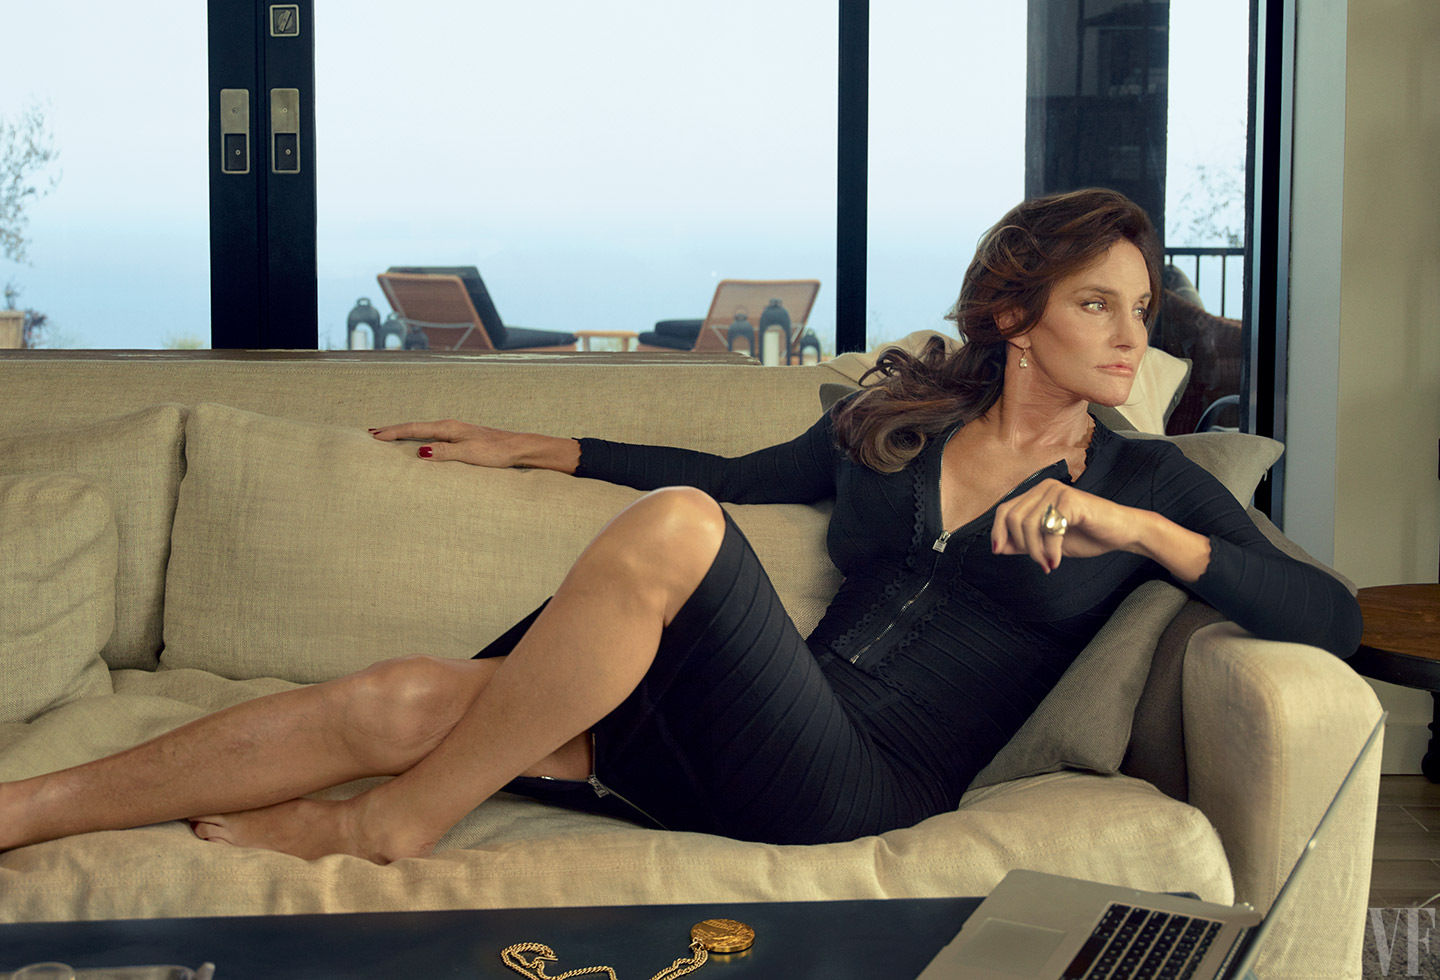 Caitlyn Jenner inspires authenticity